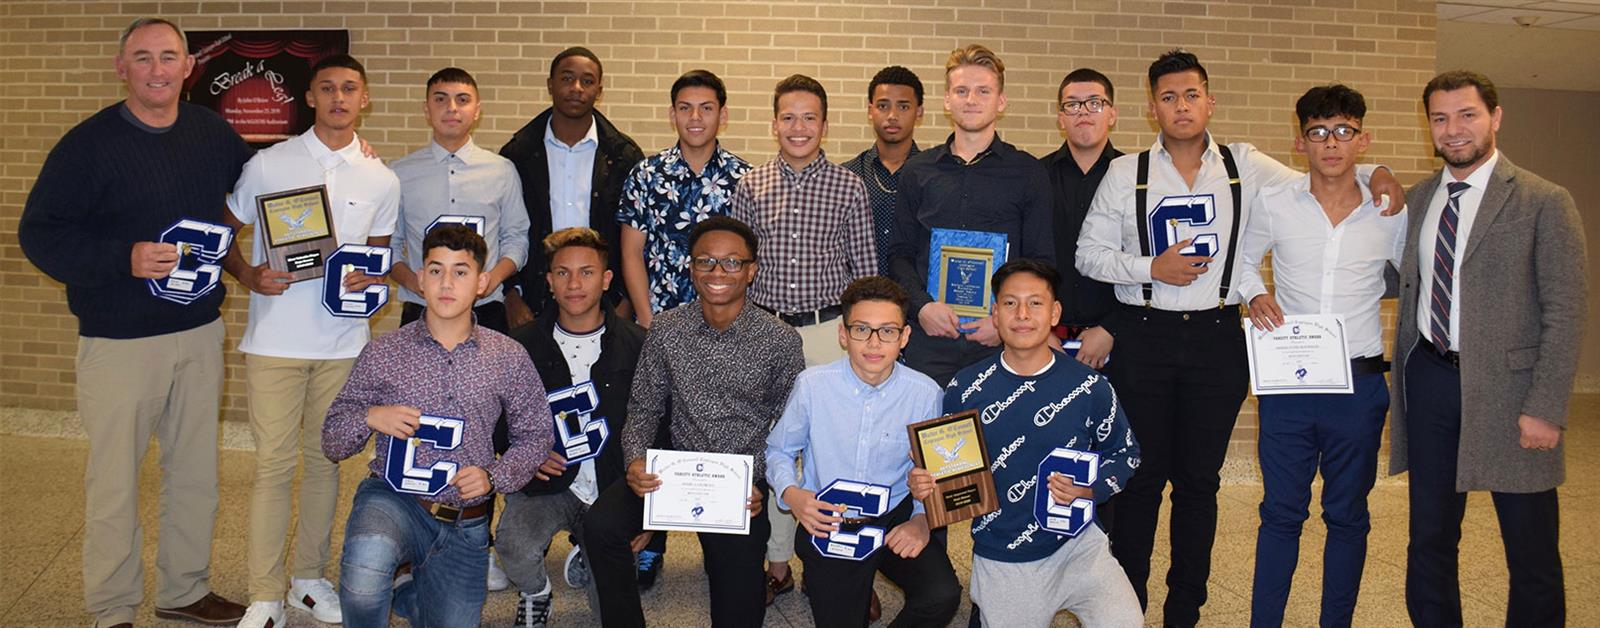 Fall Athletes Acknowledged at Annual Awards photo